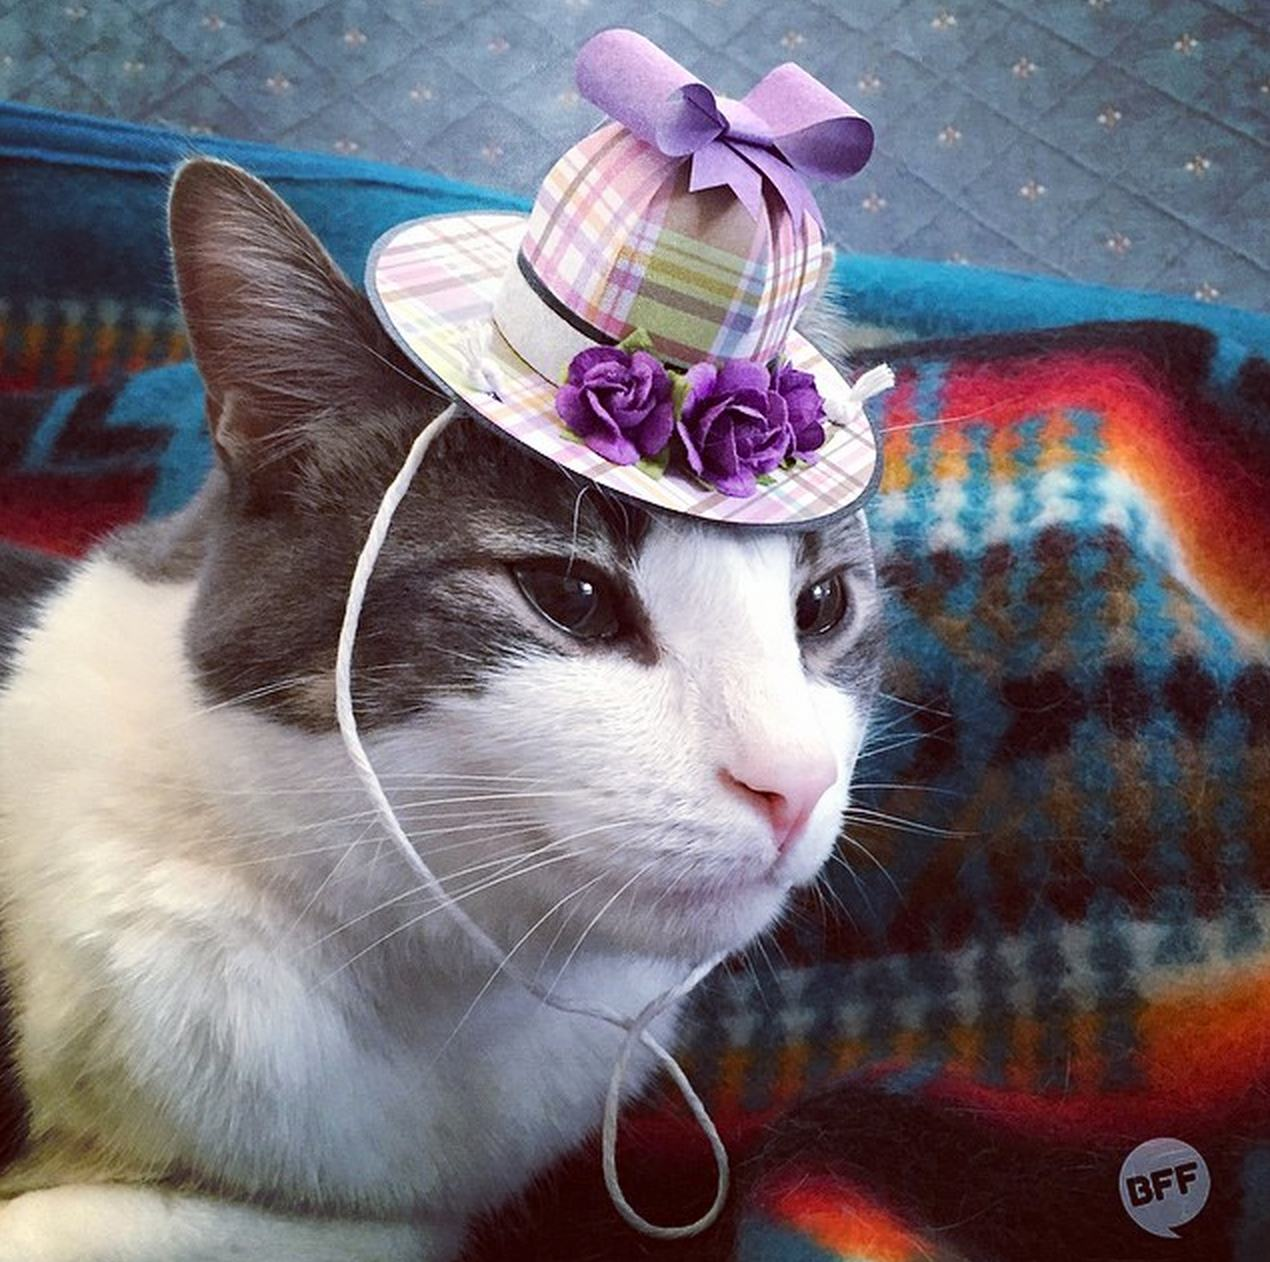 Tiny Hats On Cats Is Your New Favorite Instagram Account